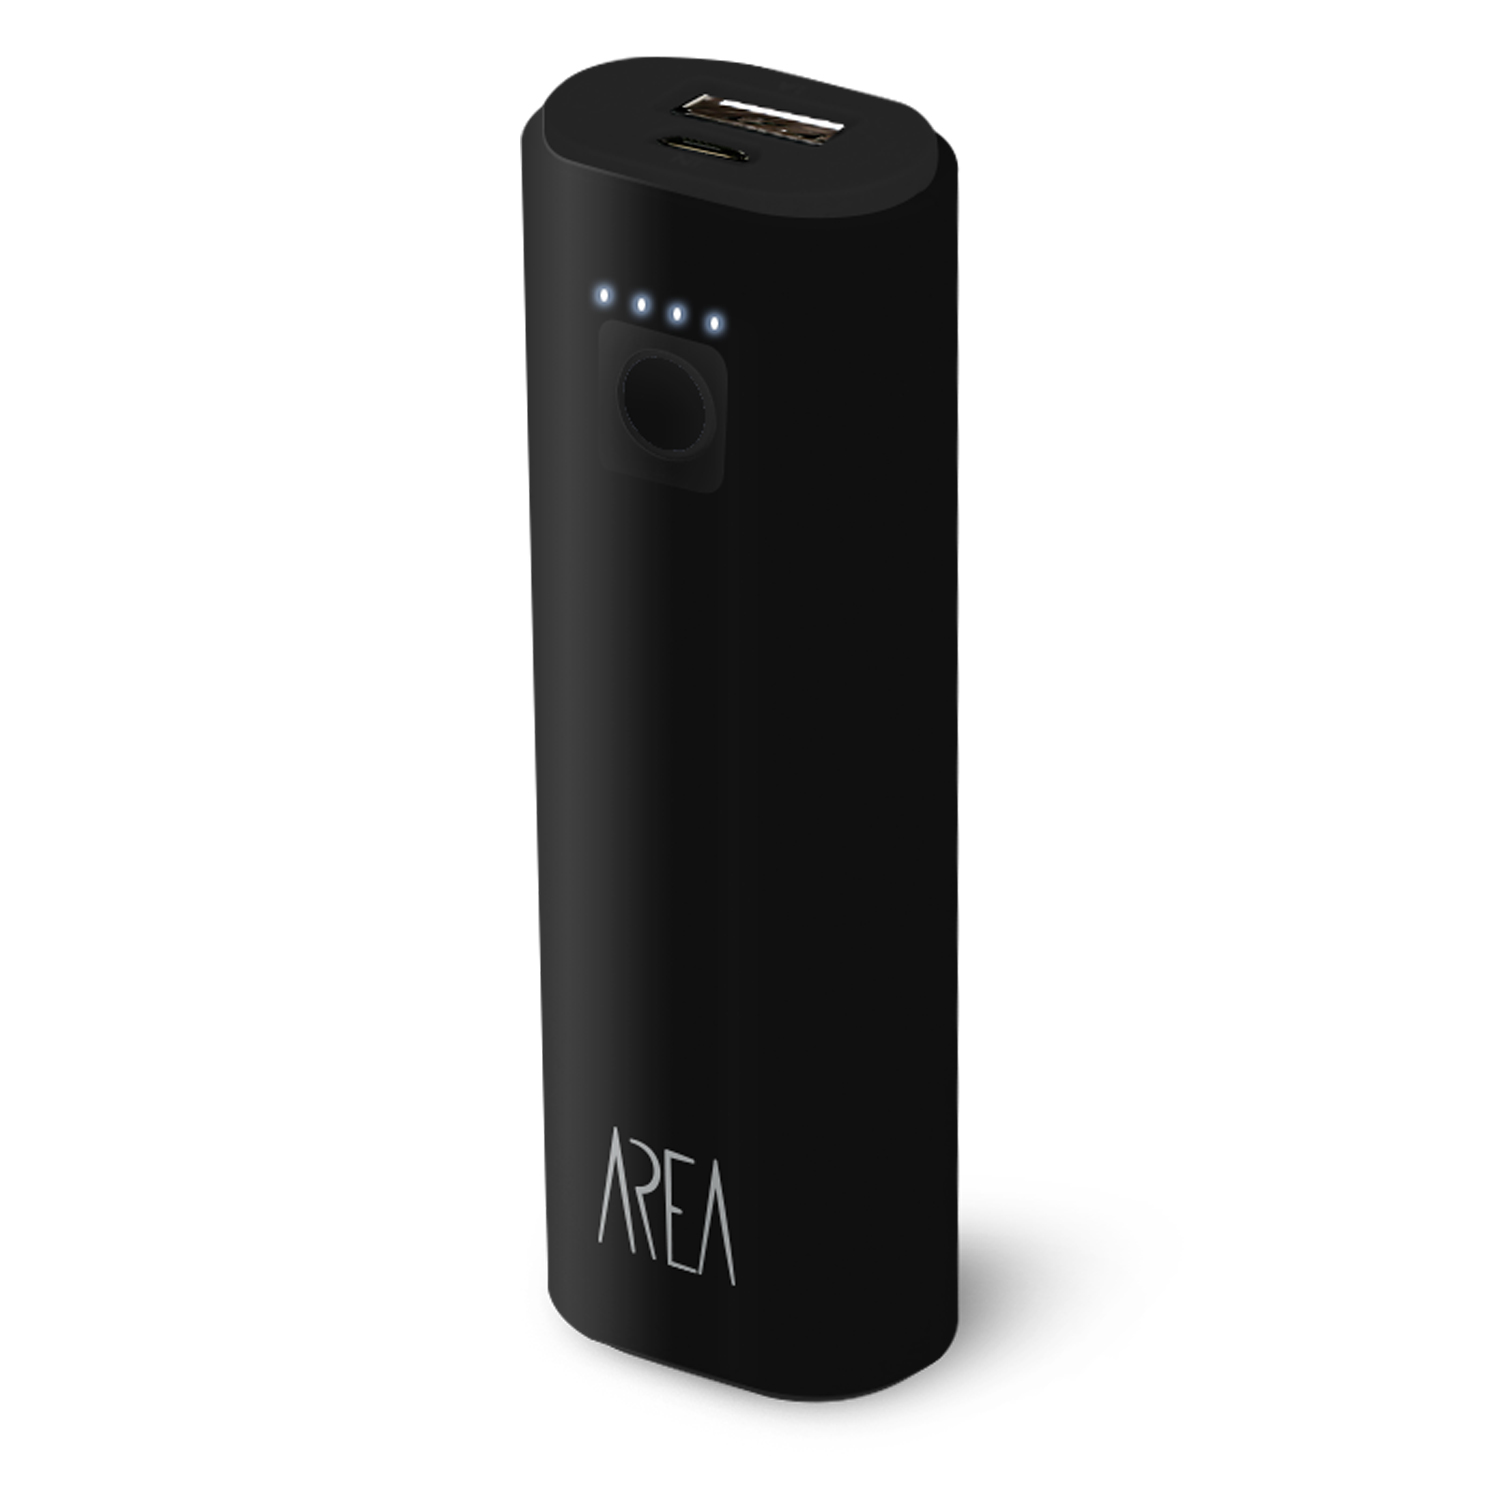 Powerbank 2500mAh - nero